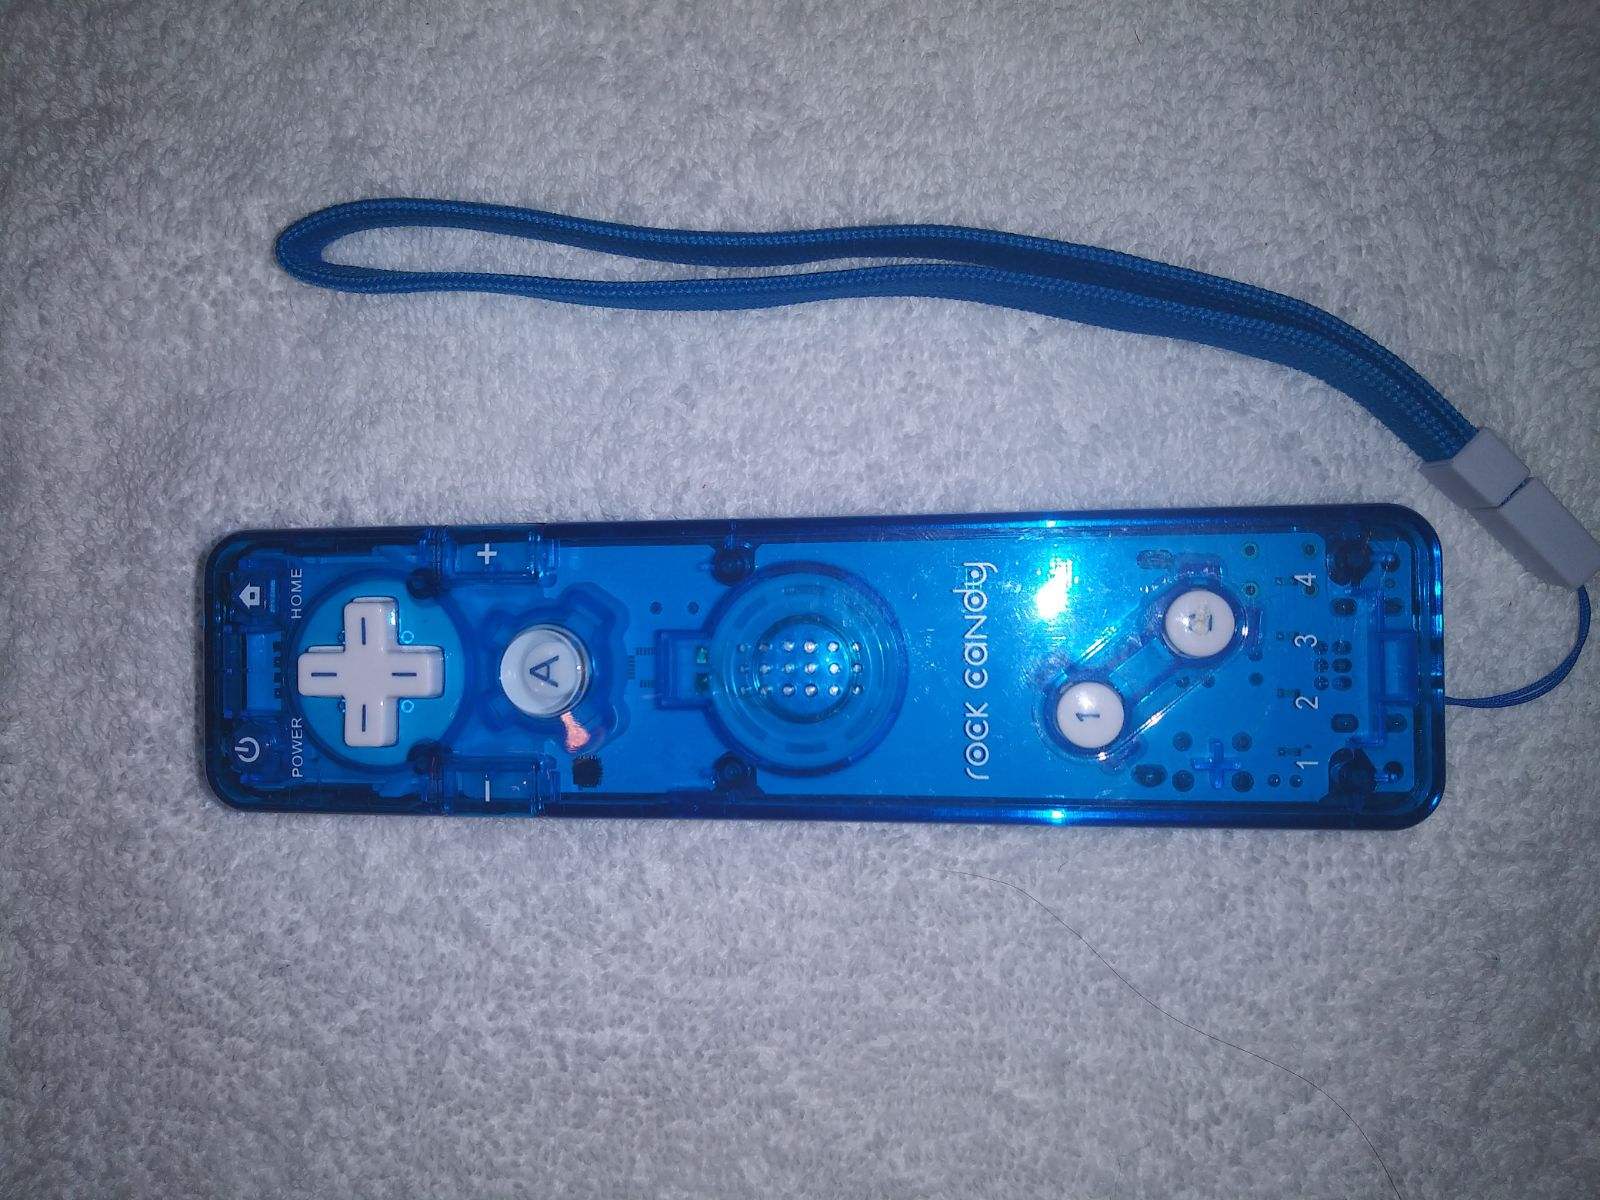 Parts missing wii rock candy remote